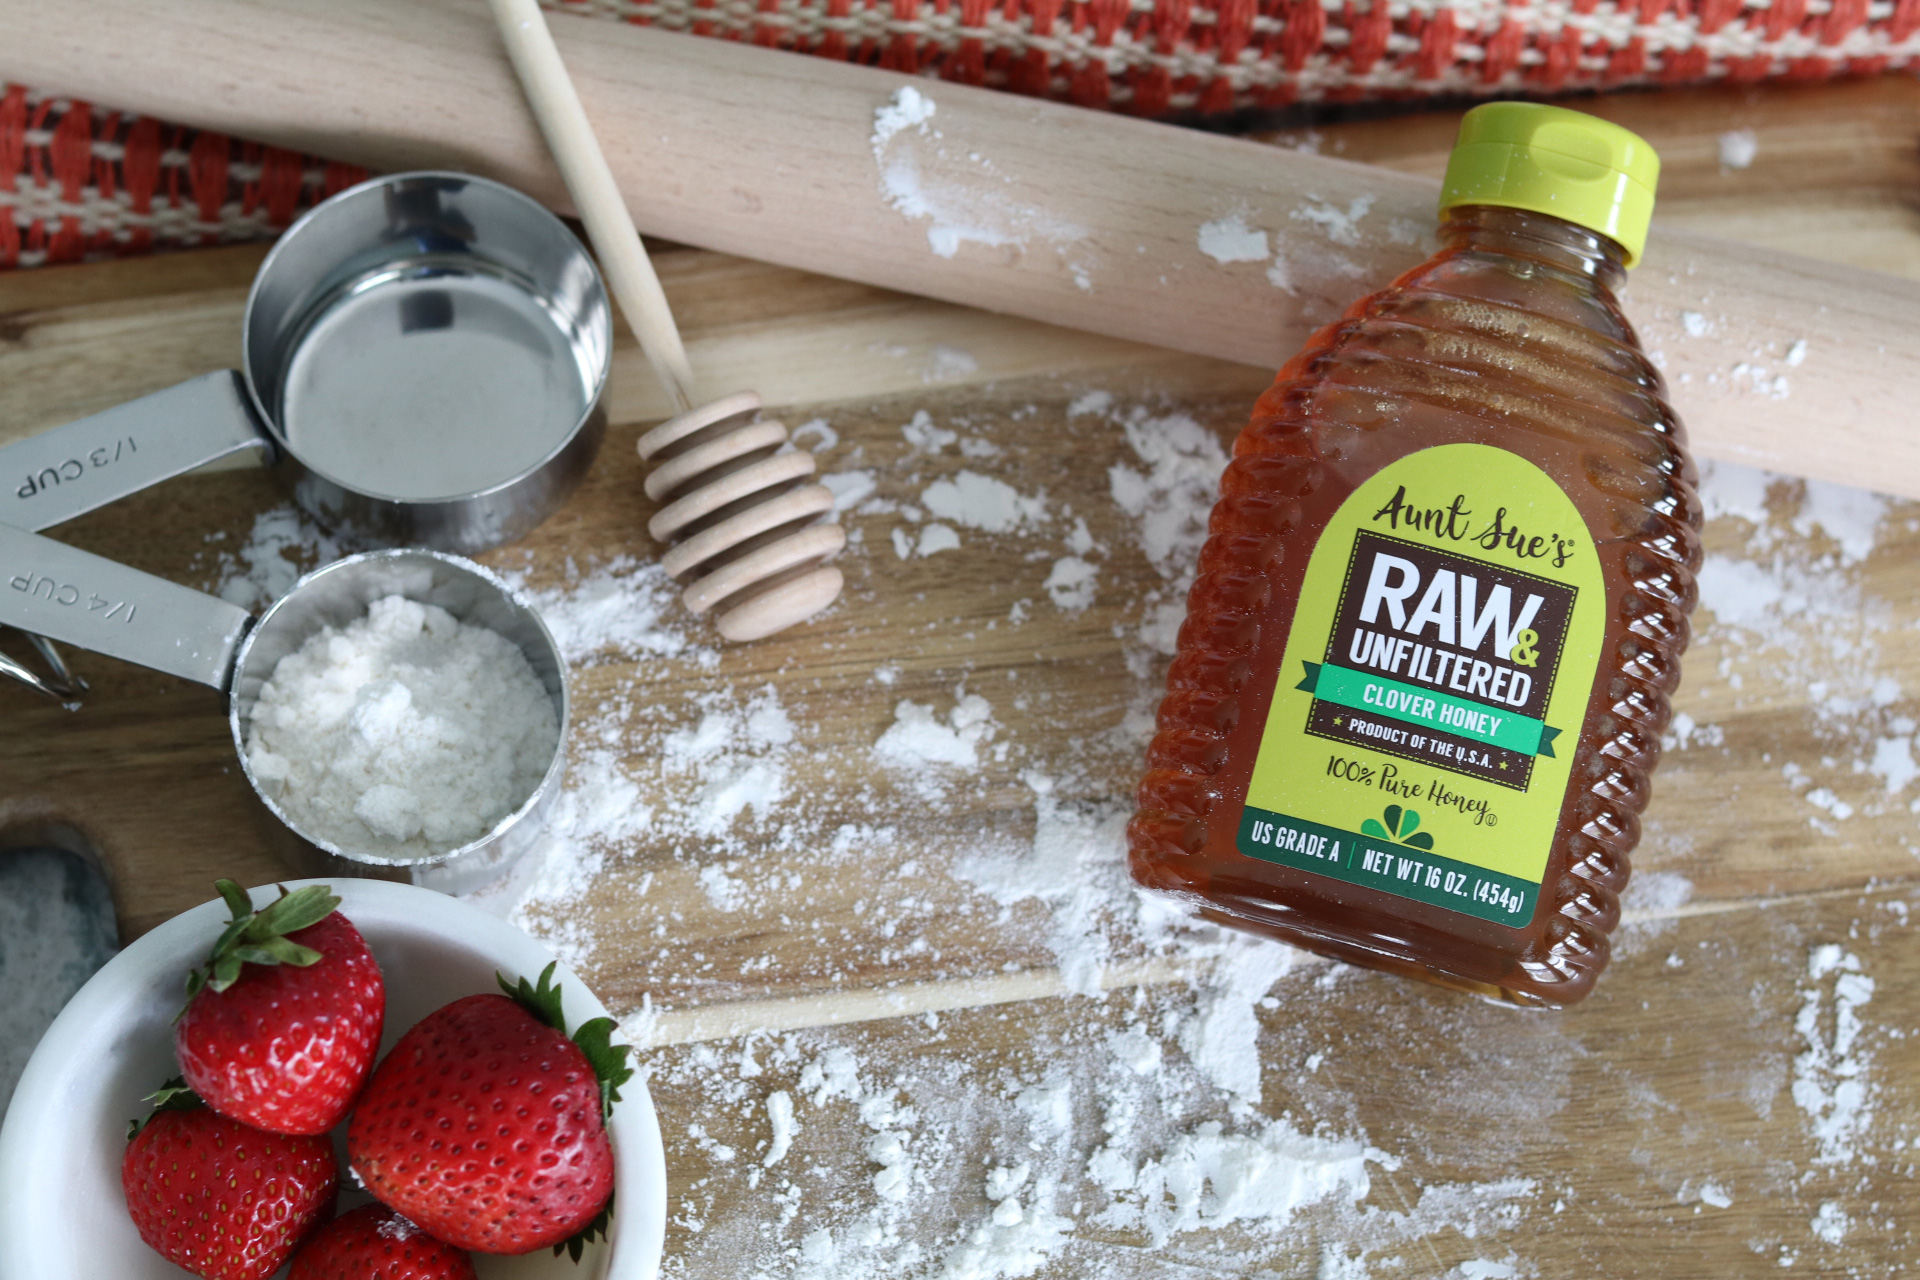 Aunt Sue's Raw & Unfiltered Honey with Baking Supplies